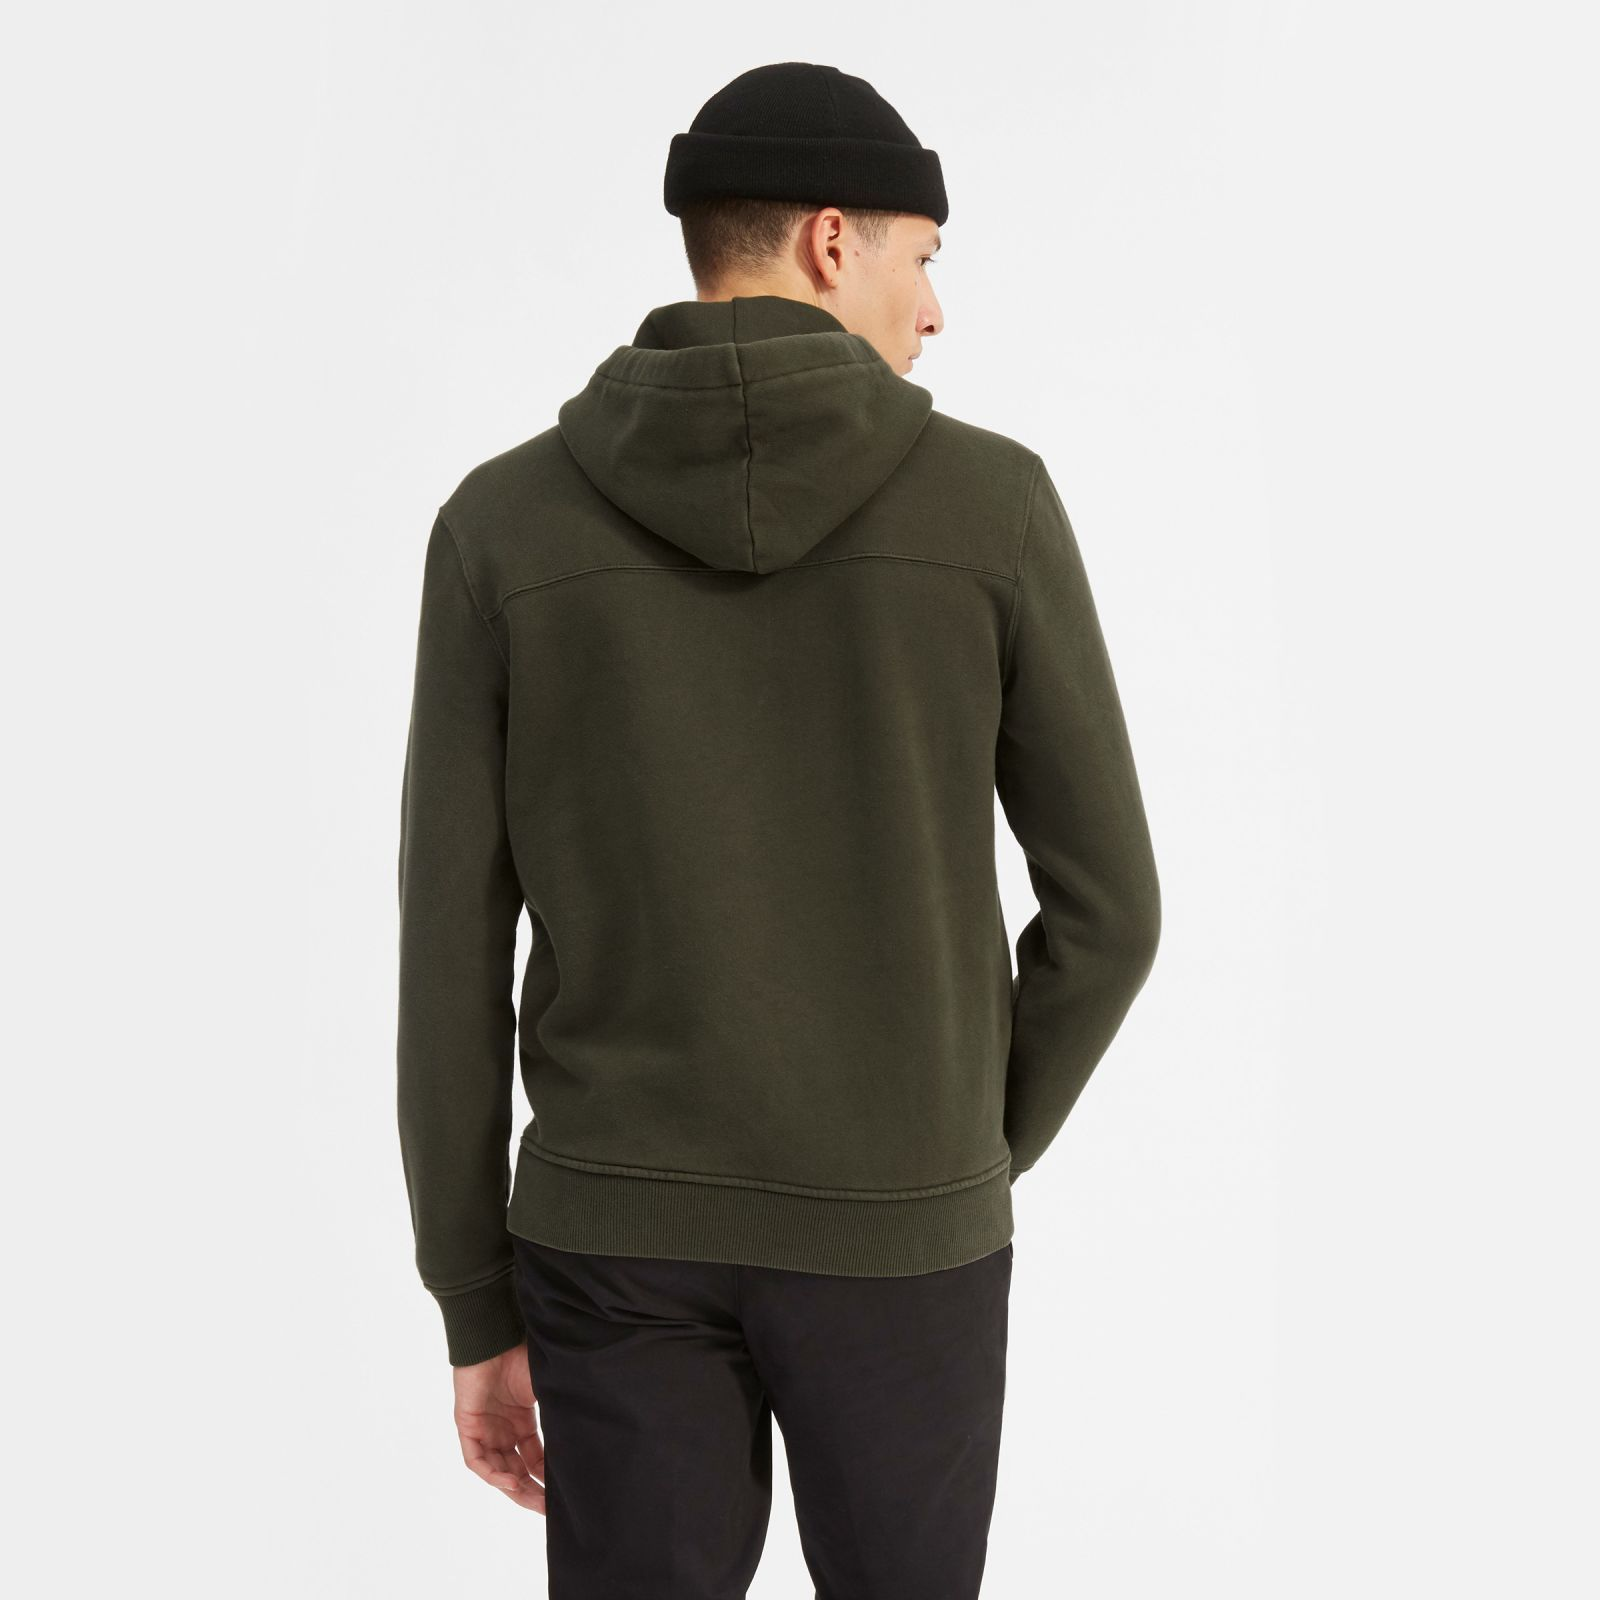 20981cd41405 Men s 365 Fleece Hoodie by Everlane in Pine